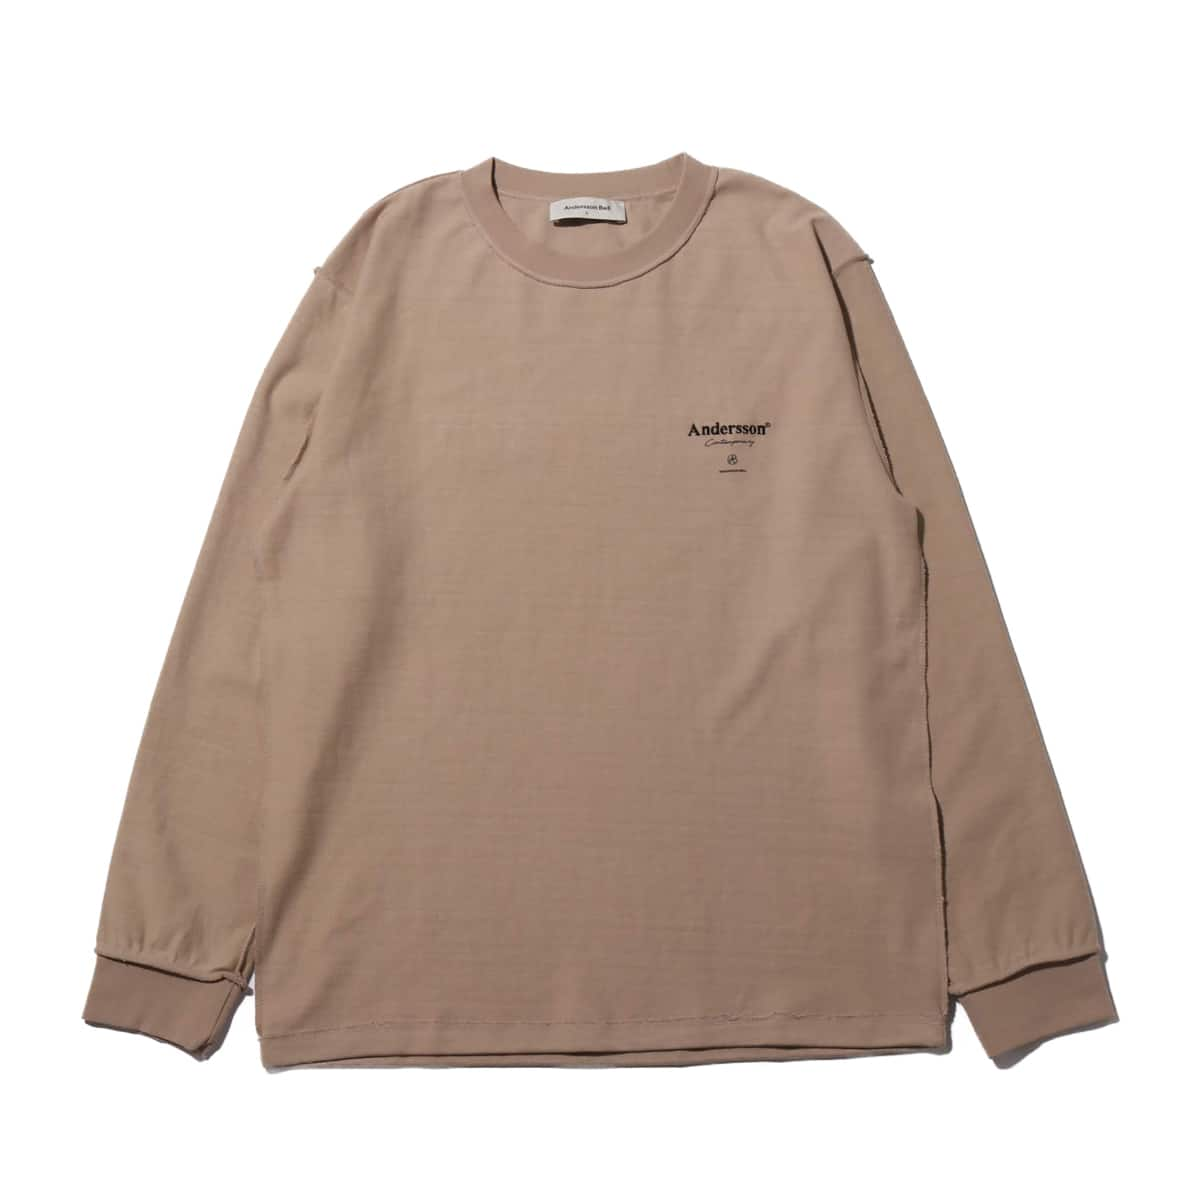 Andersson Bell UNISEX ANDERSSON SIGNATURE LOGO L/S T-SHIRT SAND BEIGE 19FA-I_photo_large